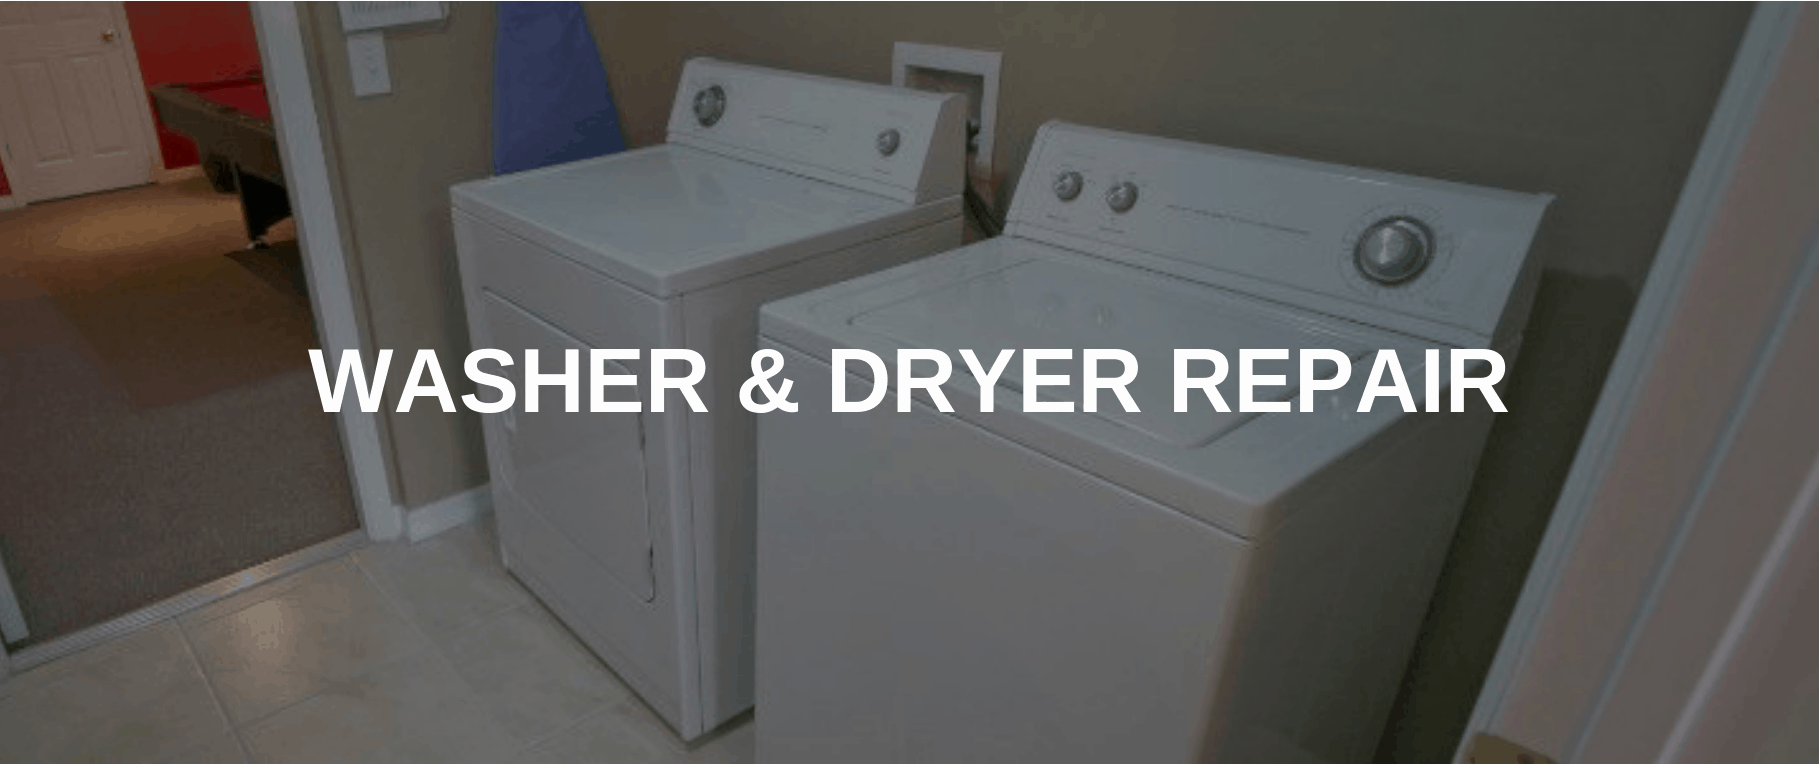 washing machine repair council bluffs